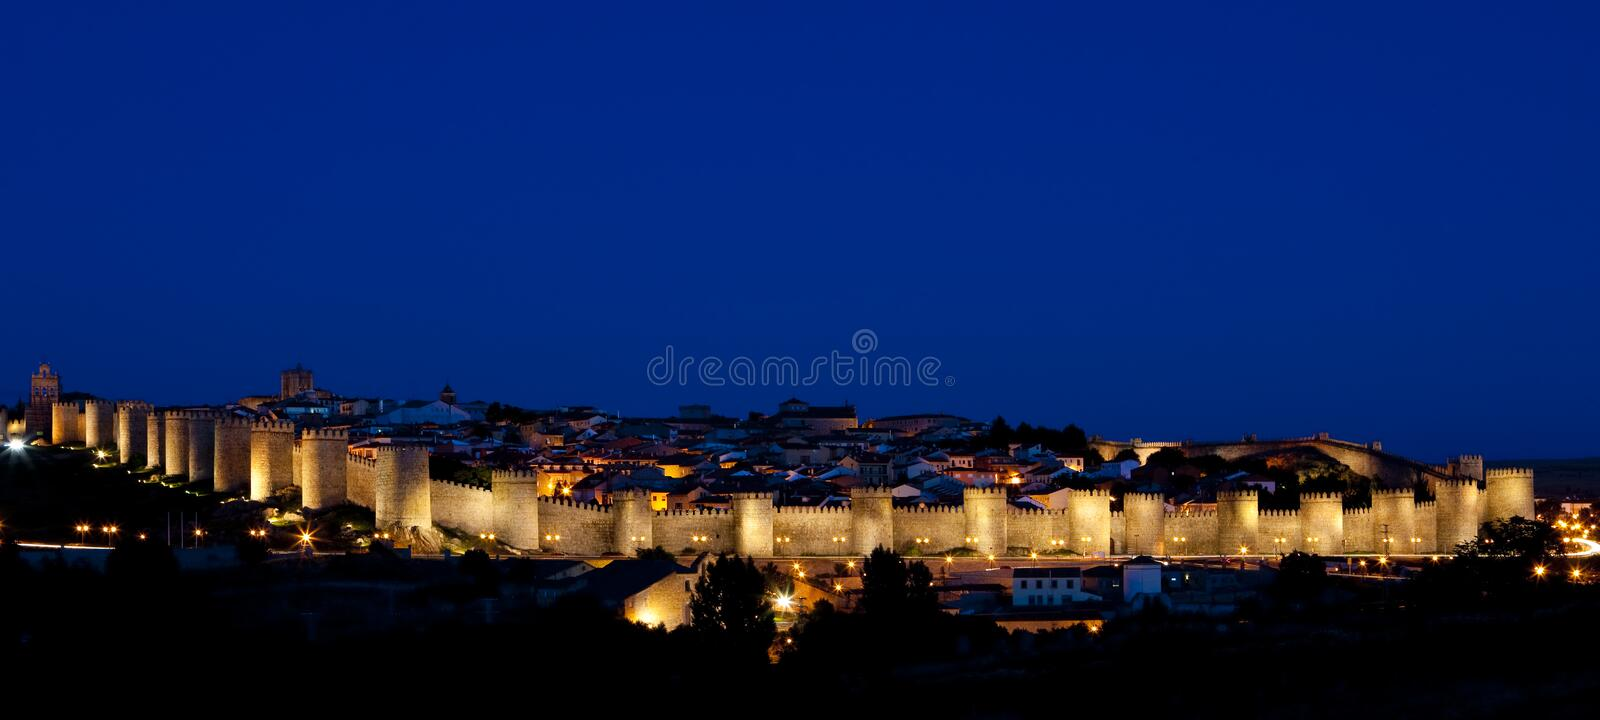 Download Avila at night stock image. Image of heritage, architecture - 10436063